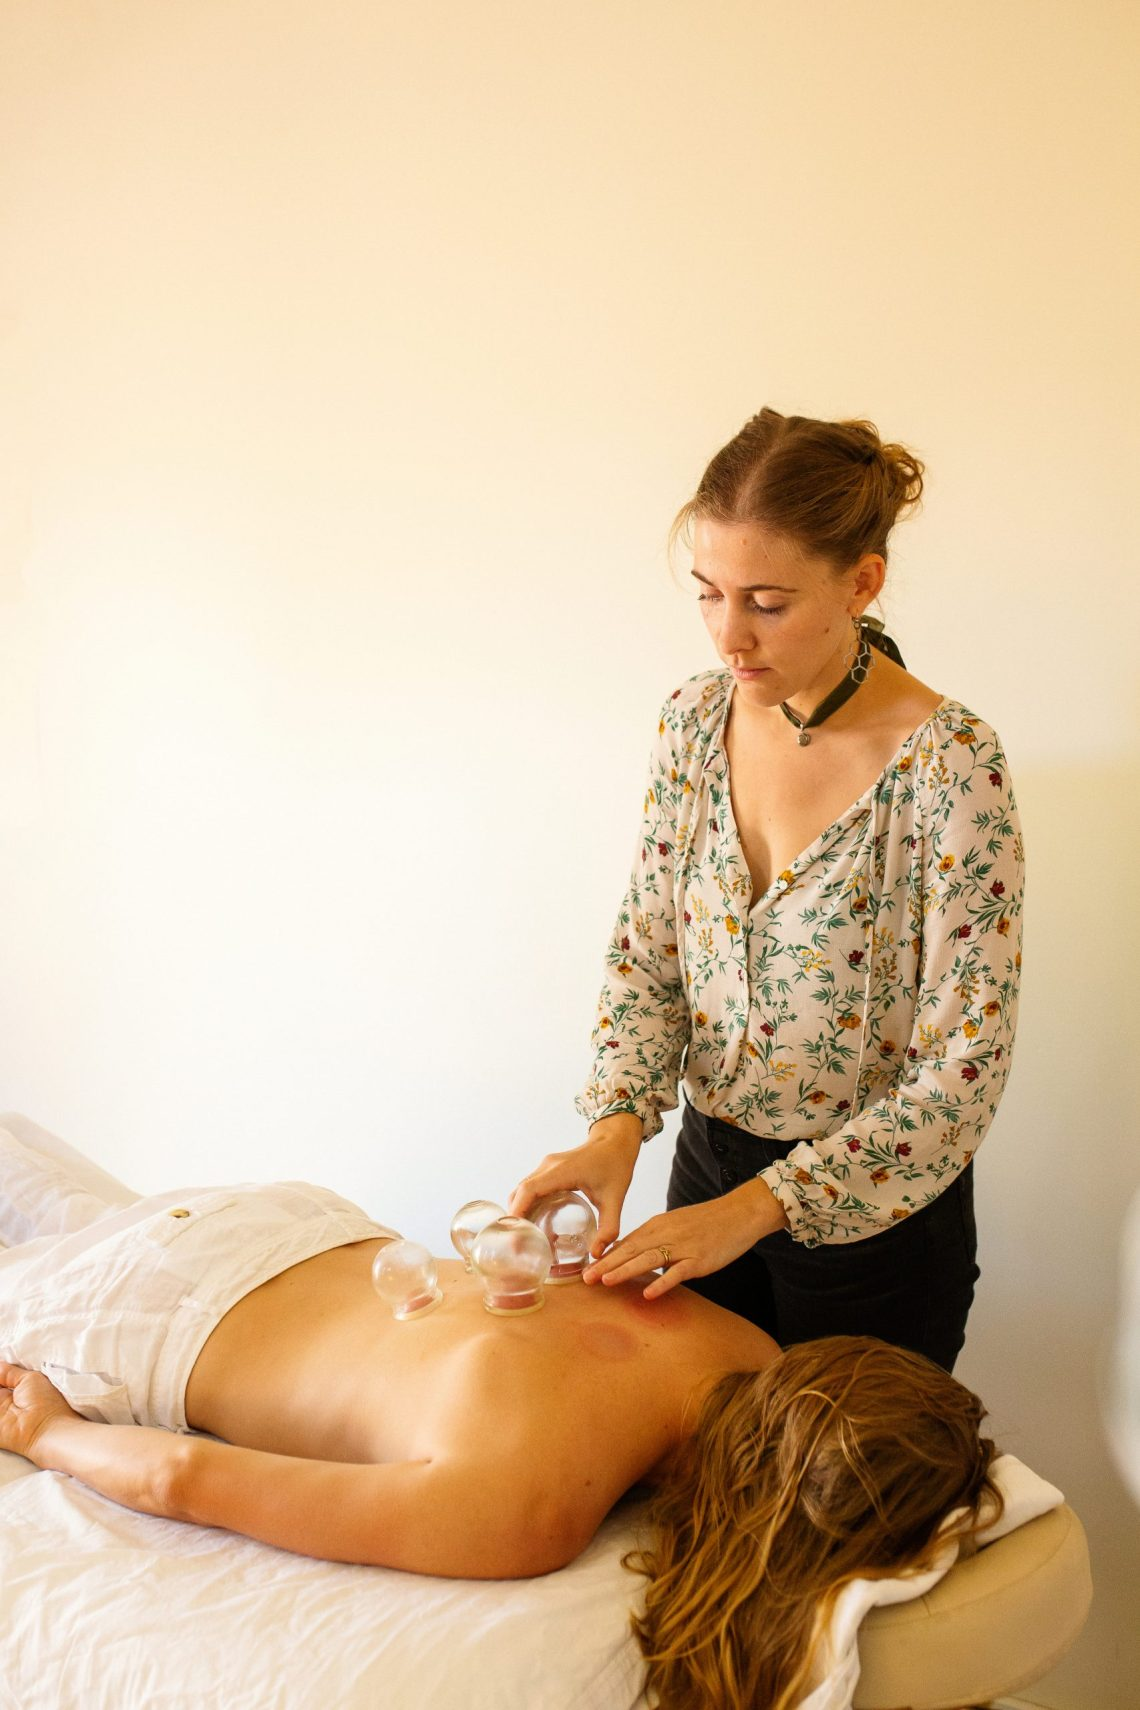 Holistic wellness clinic photography session. Healthcare professional provides cupping for Chinese medicine treatment in photography session by California photographer Ella Sophie.